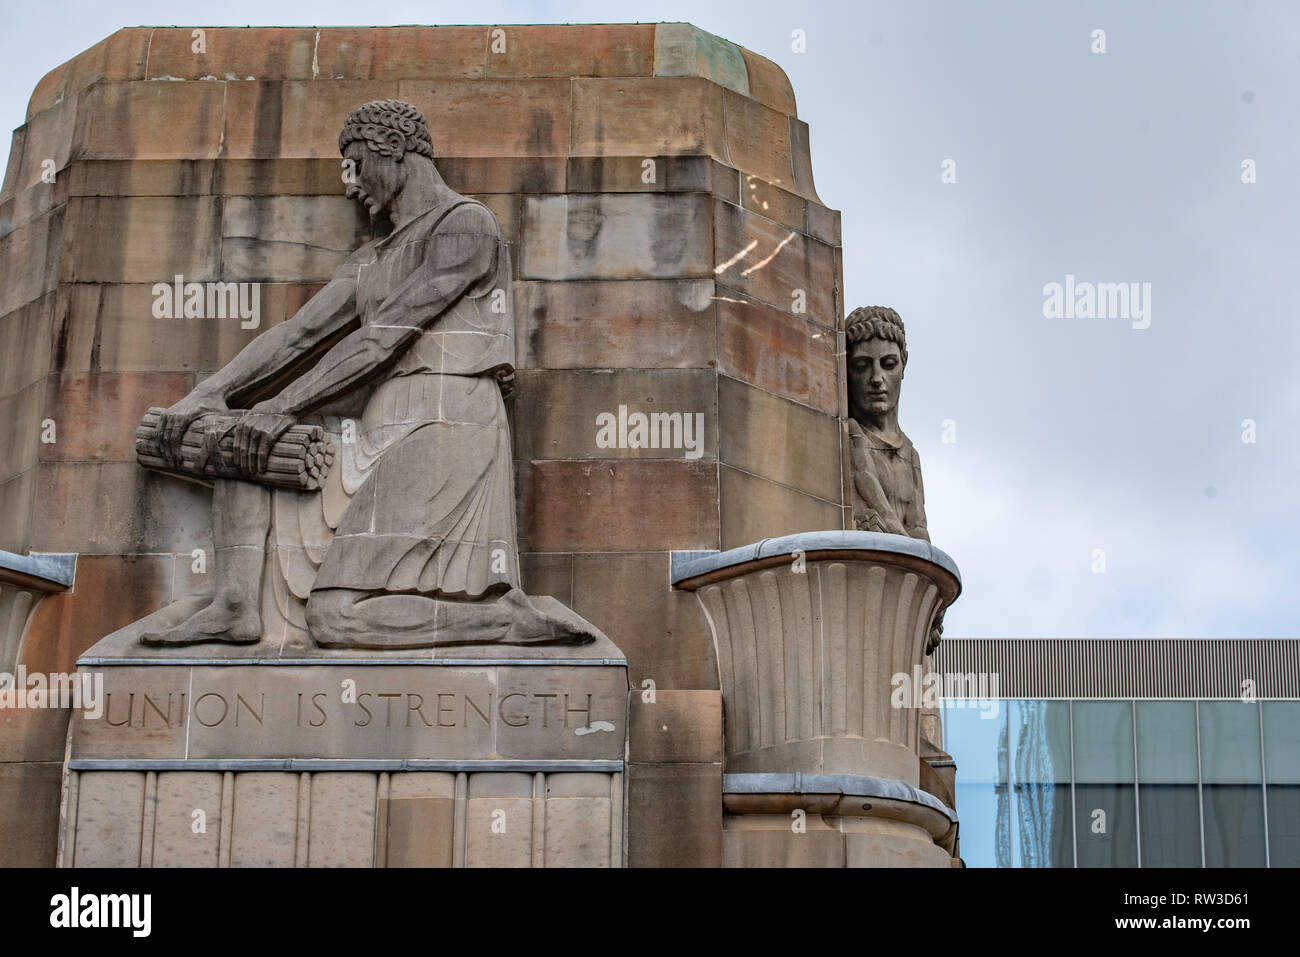 An ancient Egyptian type sculpture on the tower above the original MLC building at the corner of Martin Place and Castlereagh Street in Sydney, Aust. - Stock Image